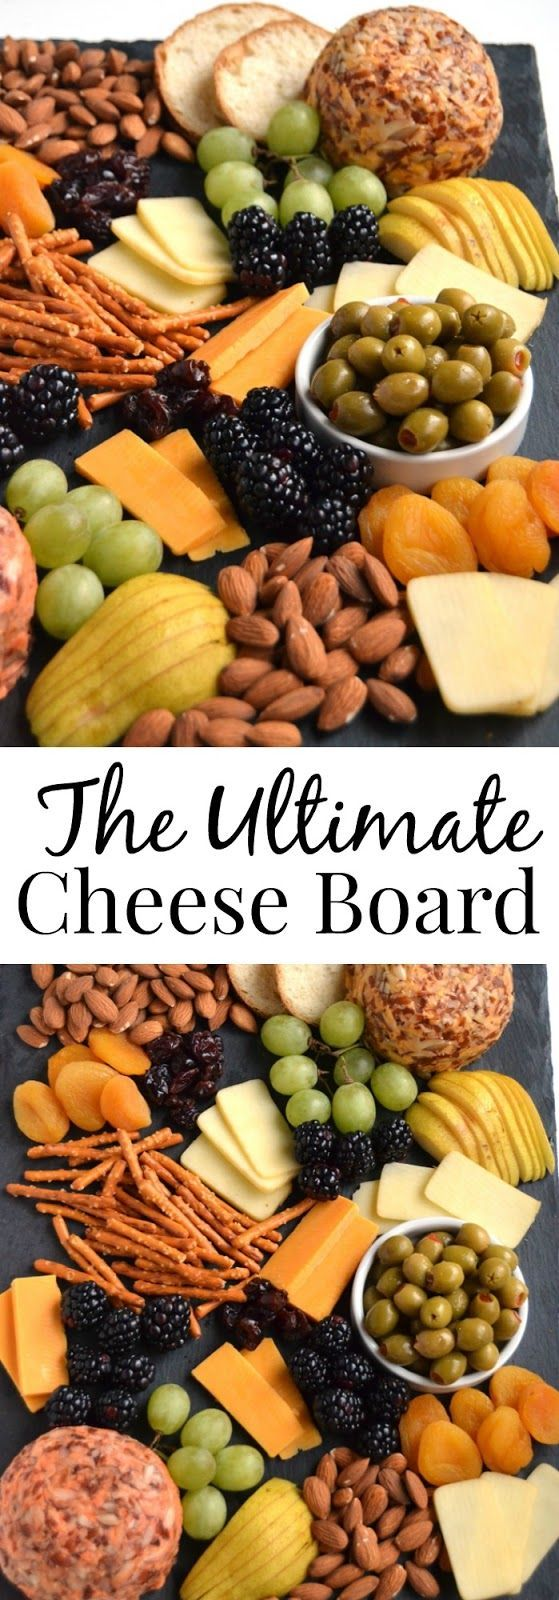 The Ultimate Cheese Board is perfect for entertaining, takes 5 minutes to put together and is filled with your favorite cheeses, nuts, dried fruits, crackers, olives and more! www.nutritionistreviews.com #thanksgiving #holidays #cheese #cheeseboard #appetizer #snack #recipes #easy